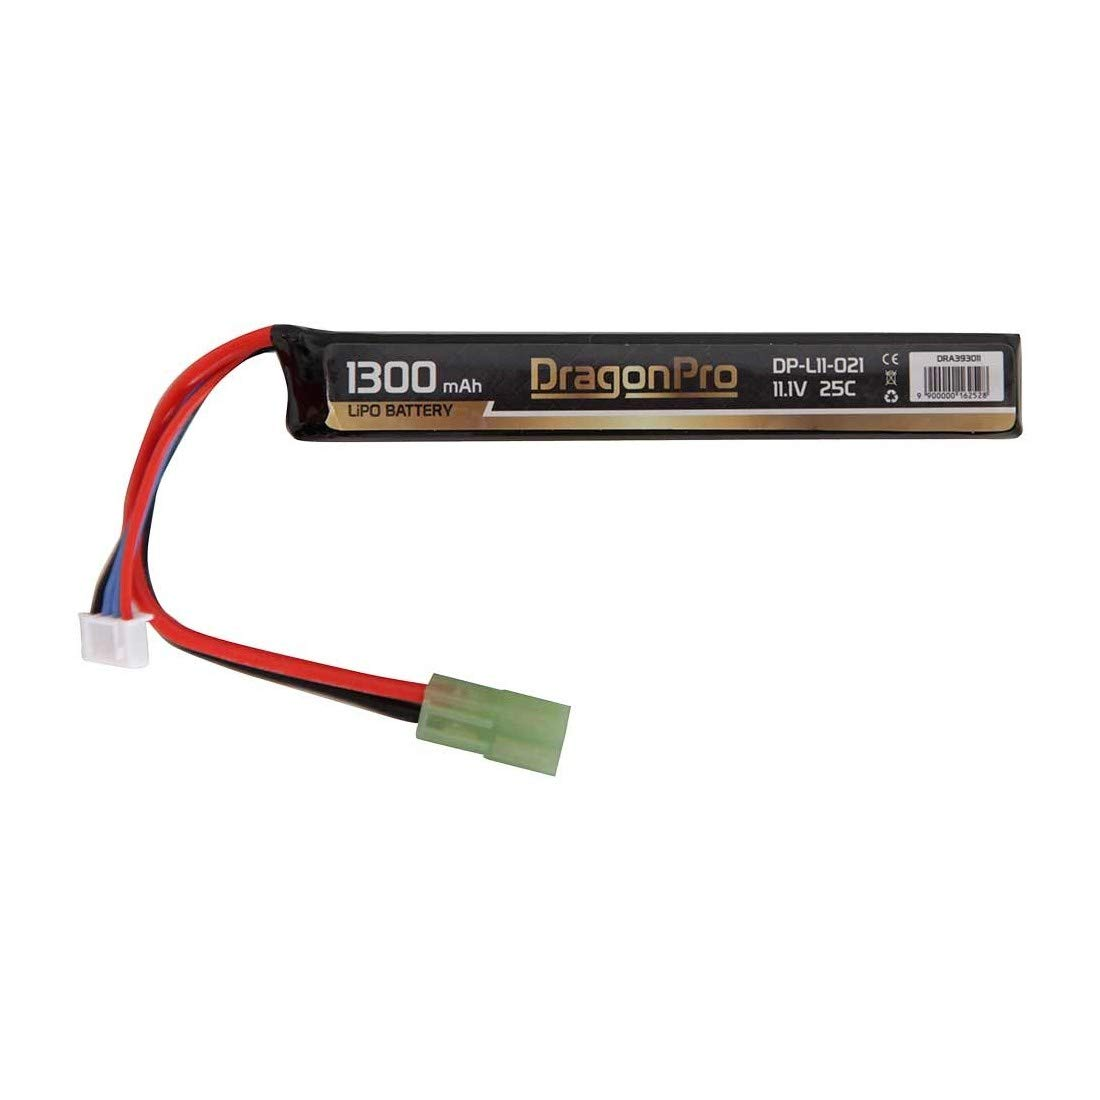 DRAGONPRO DP-L11-021 11.1V 1300mAh 25C LiPO 116x17x22mm